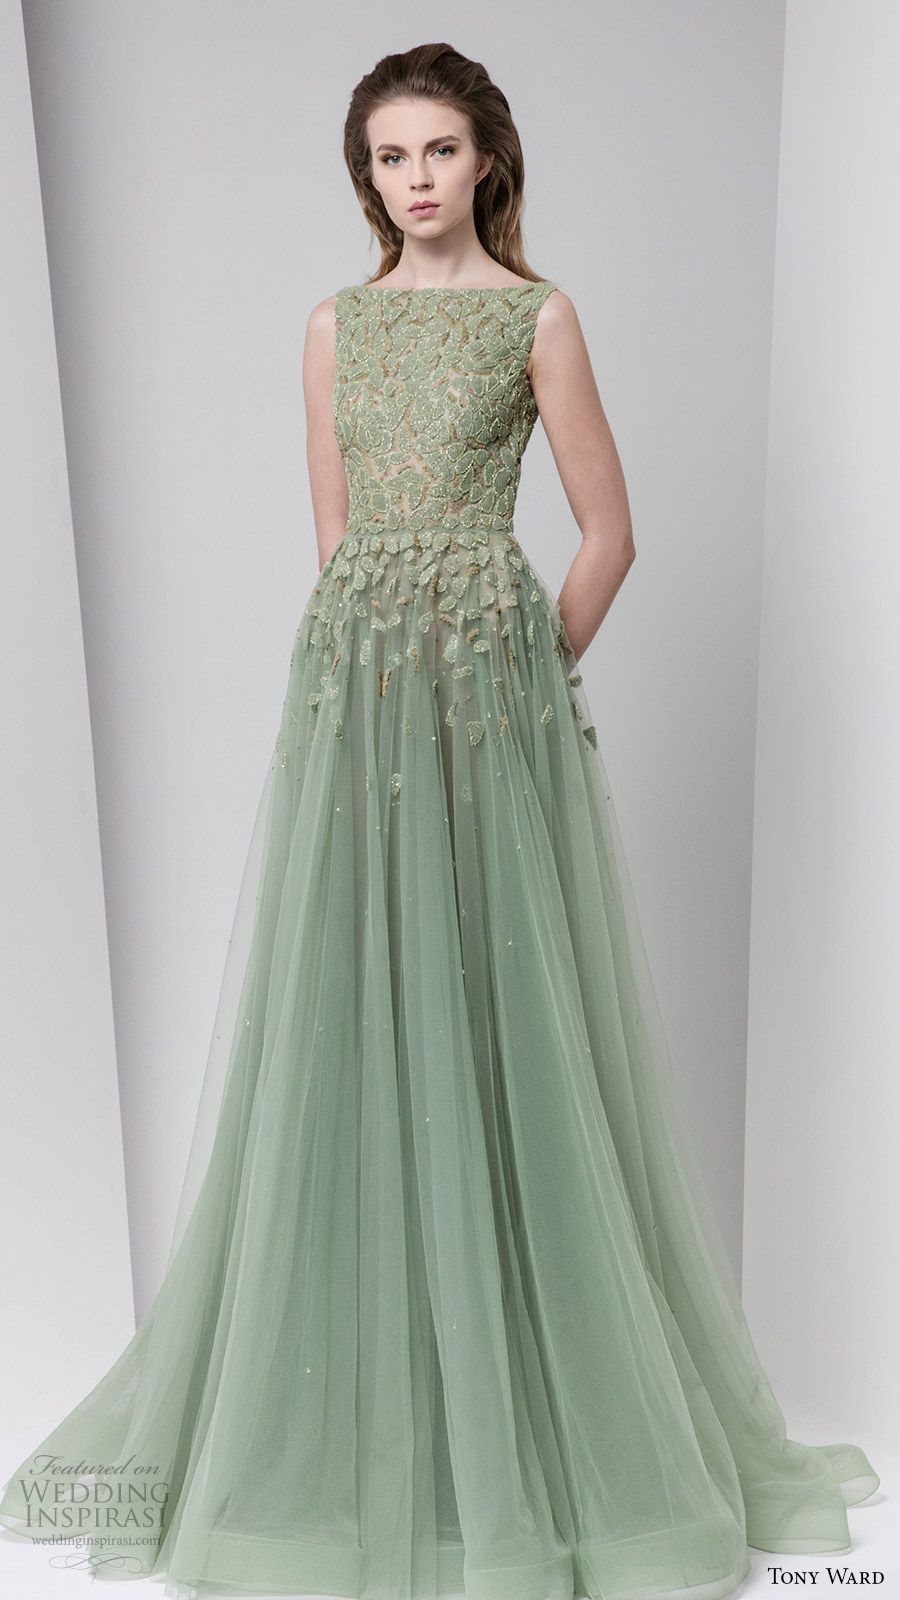 Tony ward fall winter 2016 2017 rtw sleeveless bateau for How to dress for an evening wedding